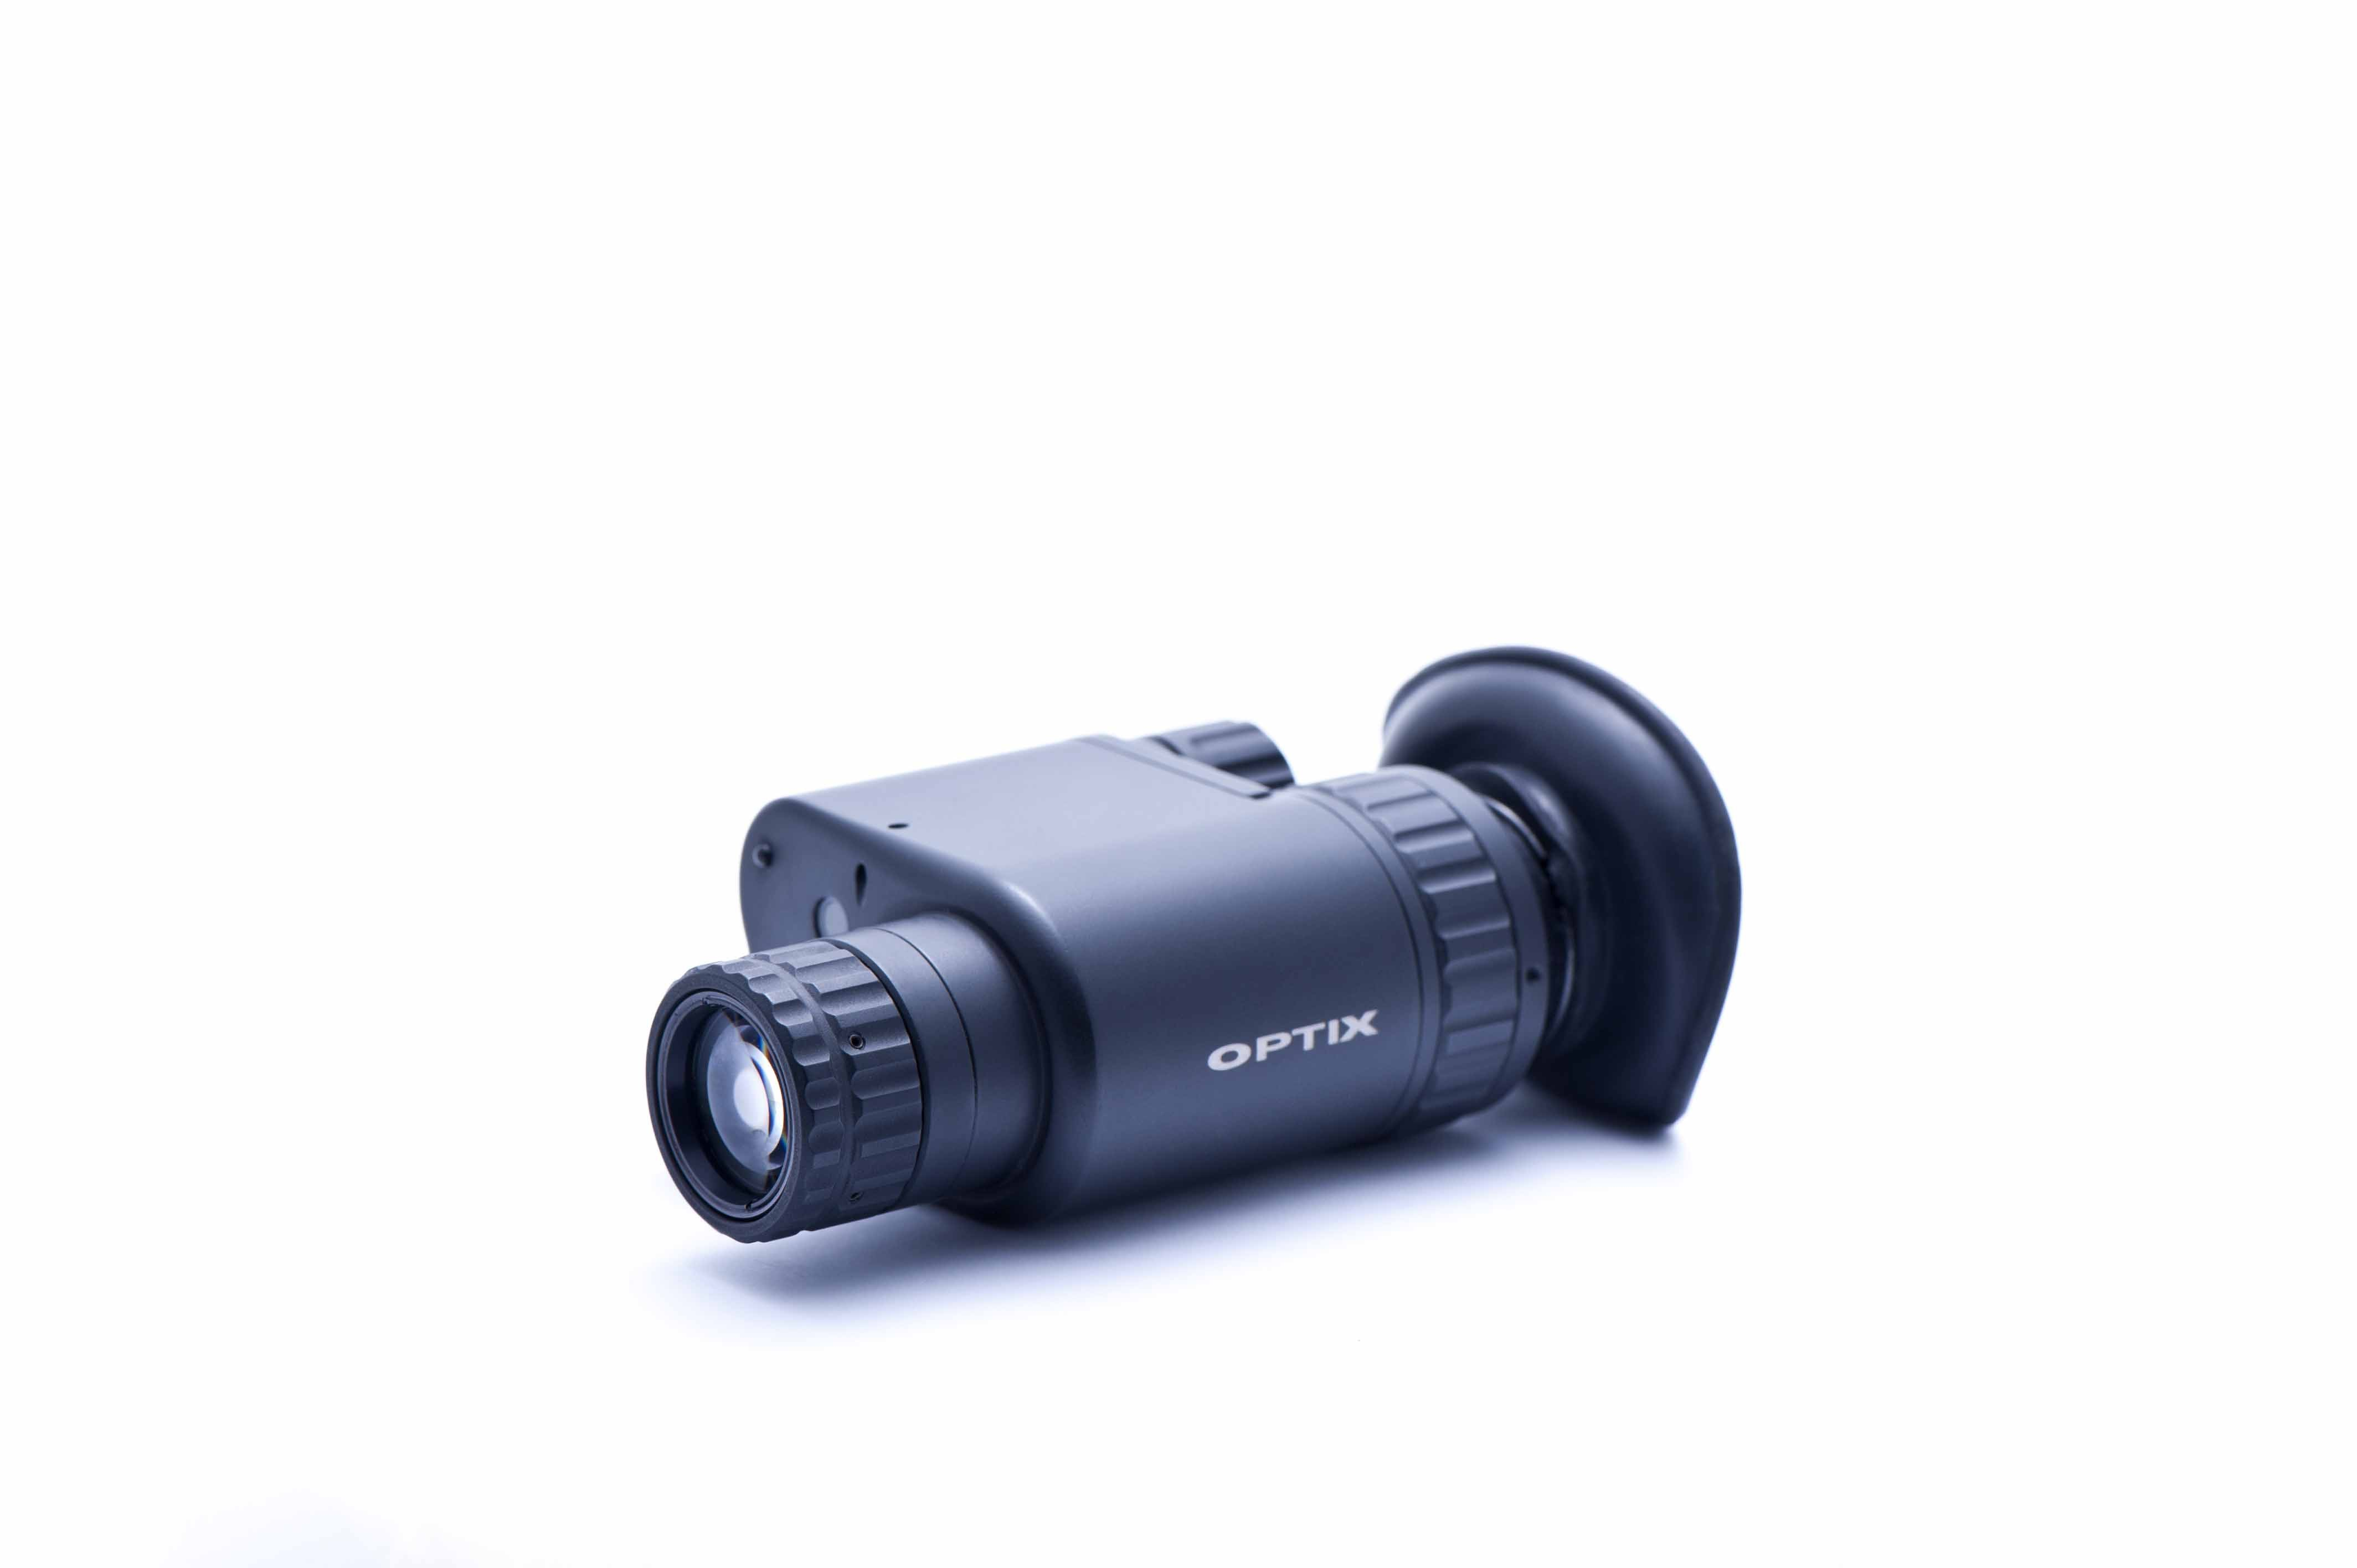 Optix-Night-Vision-Monocular-DIANA-M40